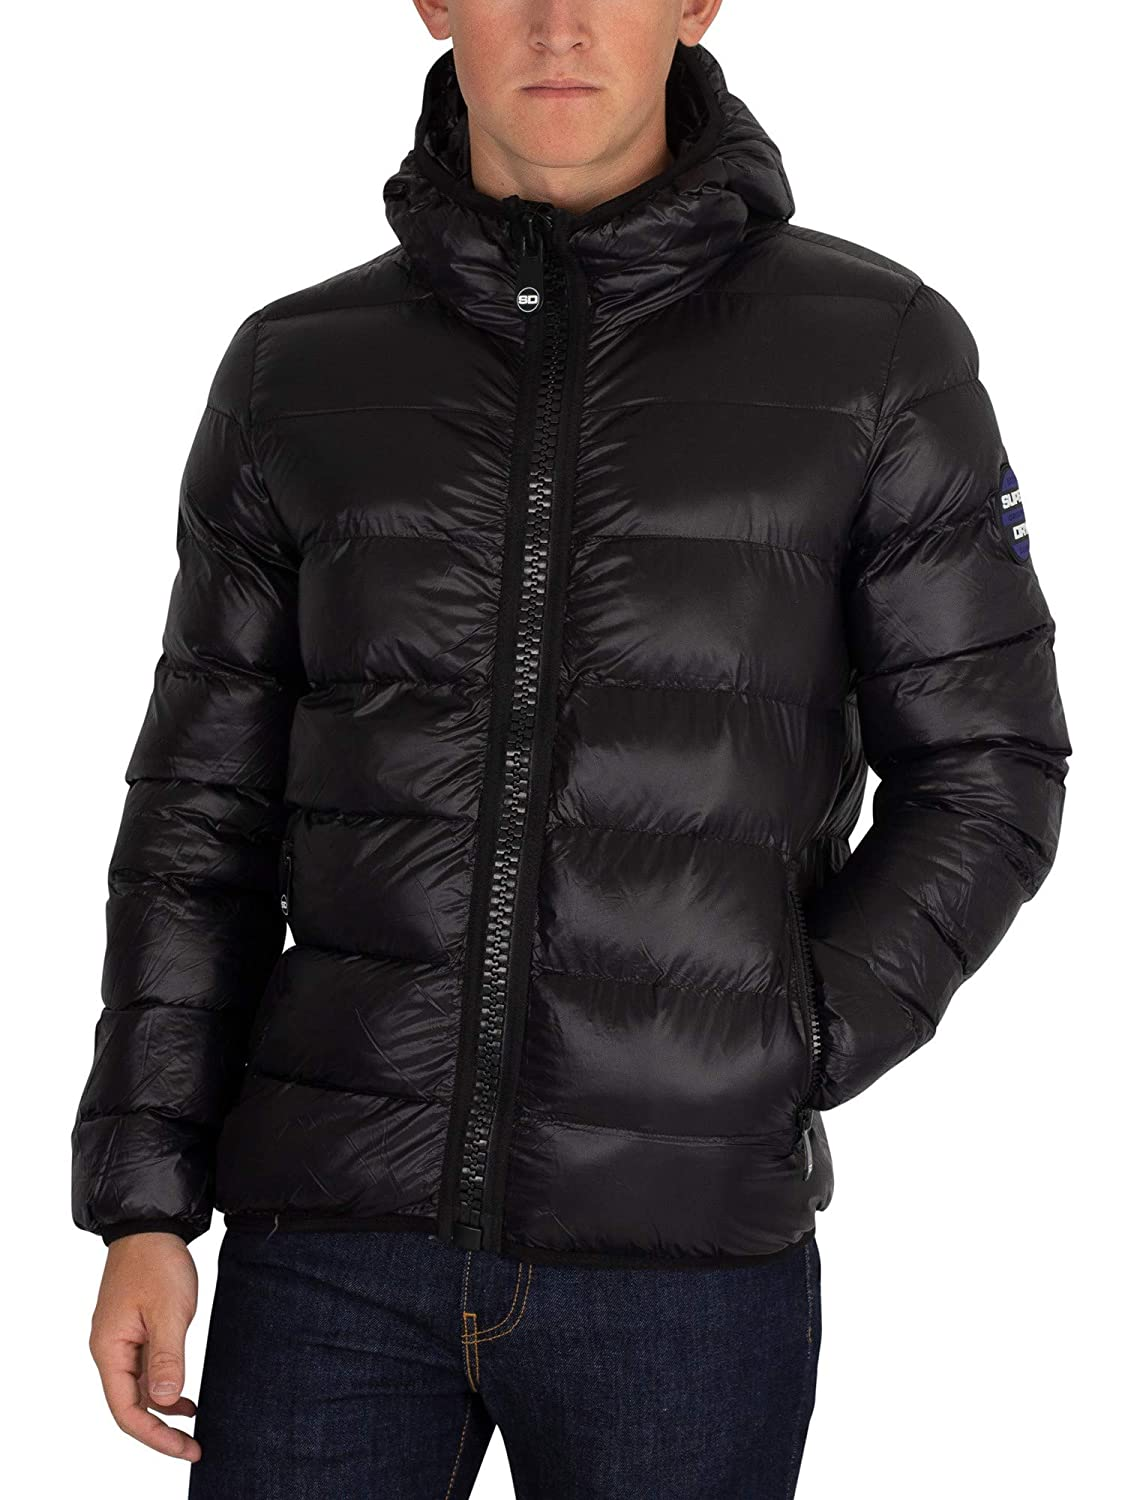 Superdry Men's Crater Padded Jacket, Black